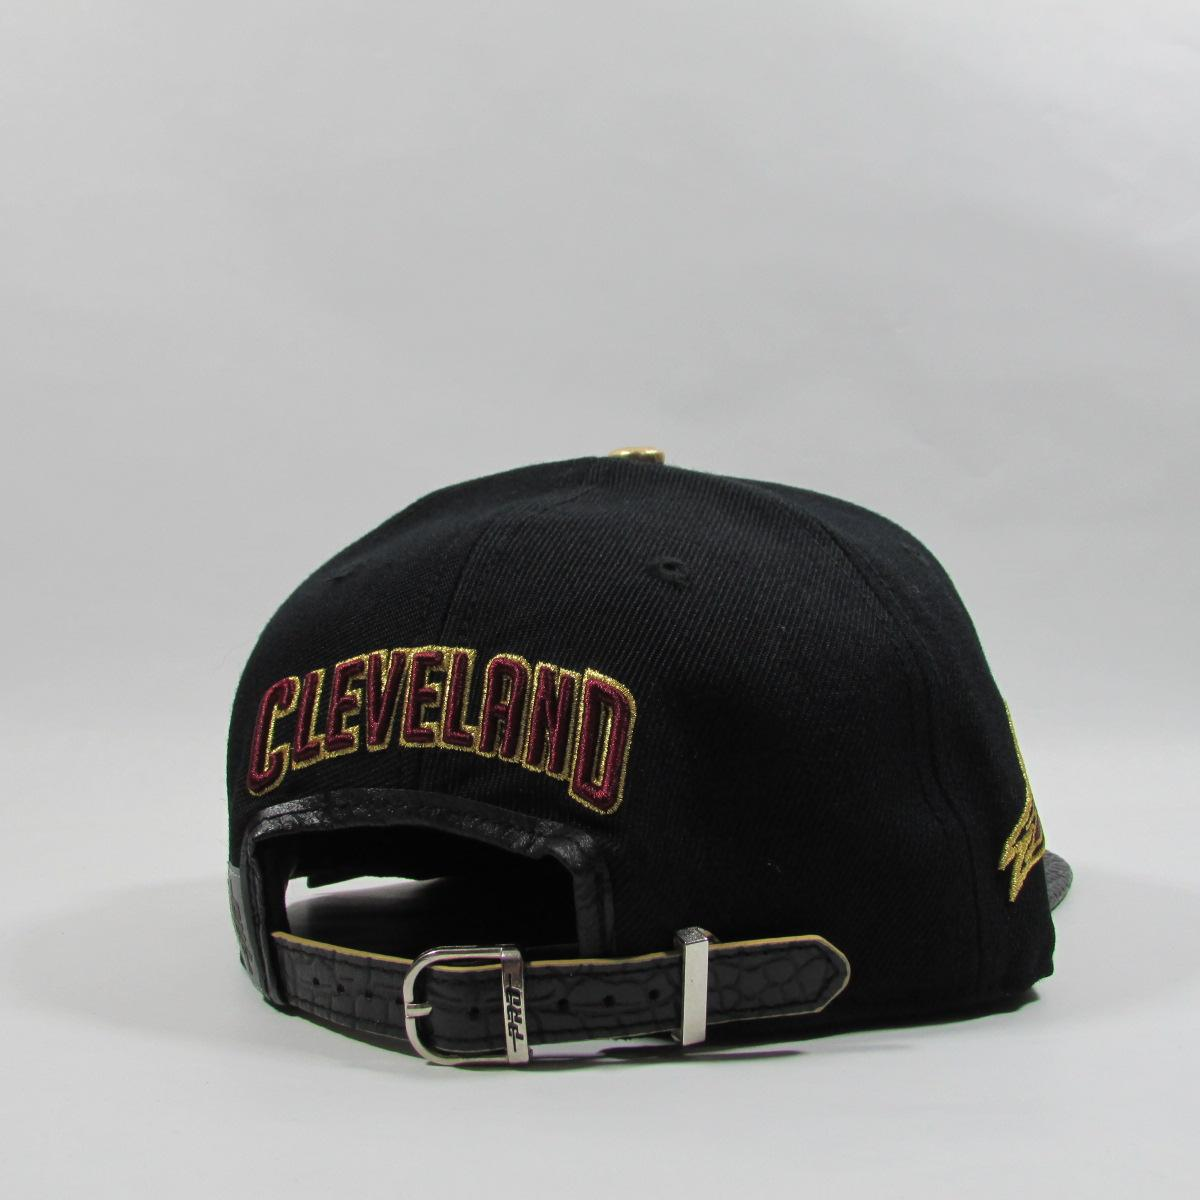 Cleveland Cavaliers CAVS Gold Leather Basketball Strapback Hat Pro Standard